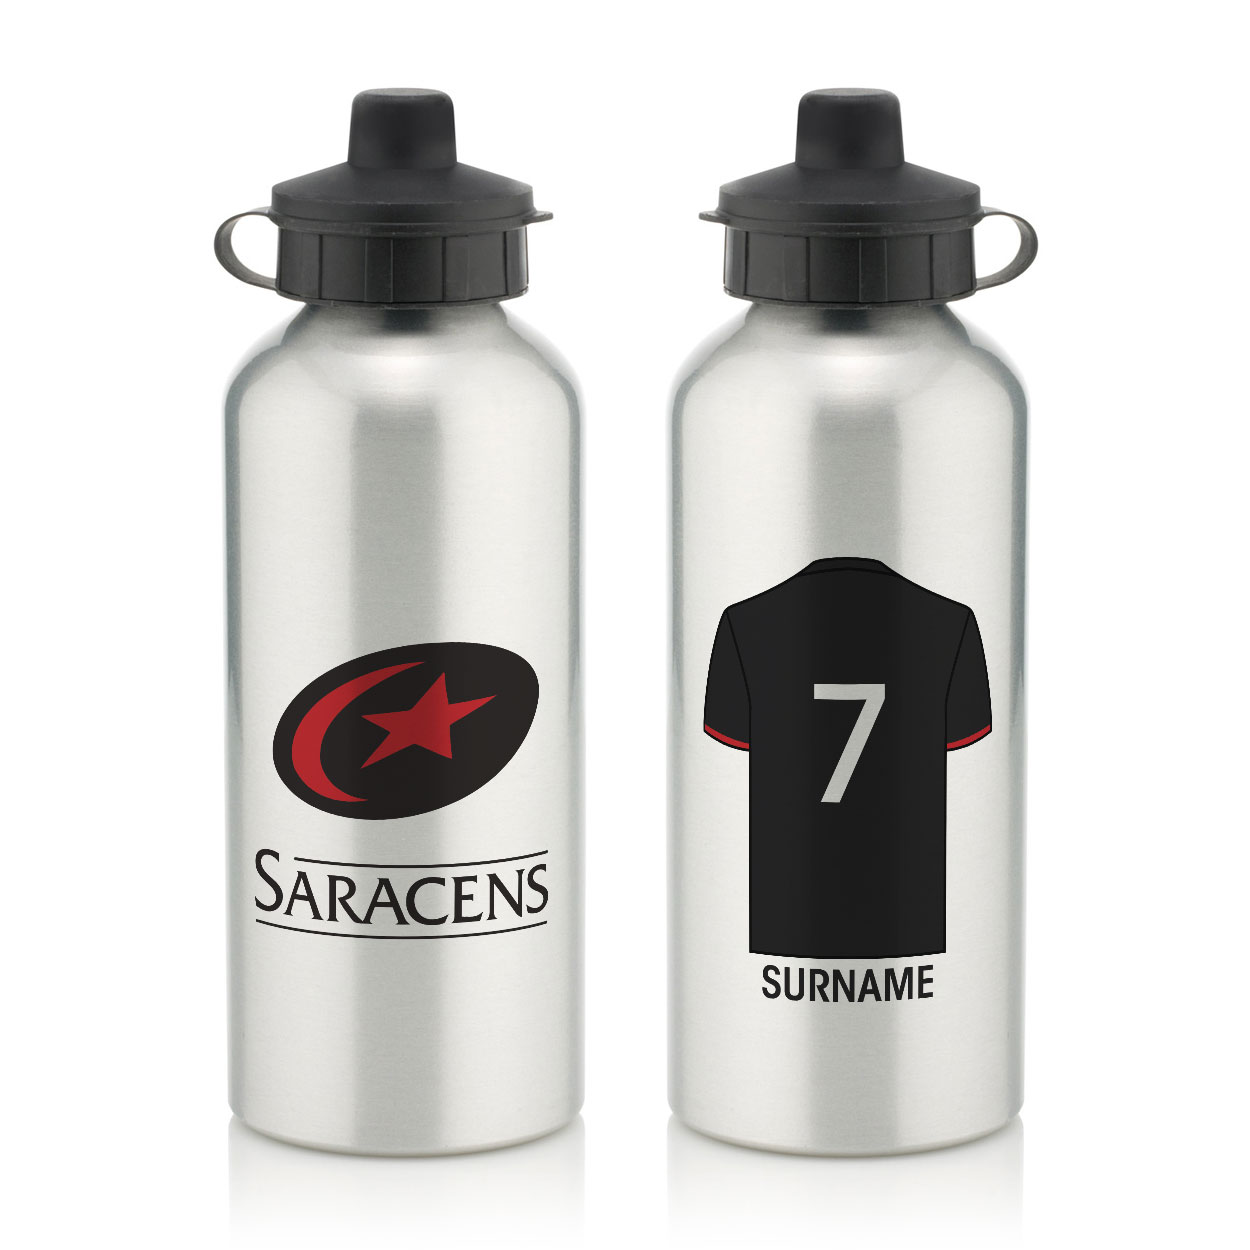 Saracens Aluminium Water Bottle